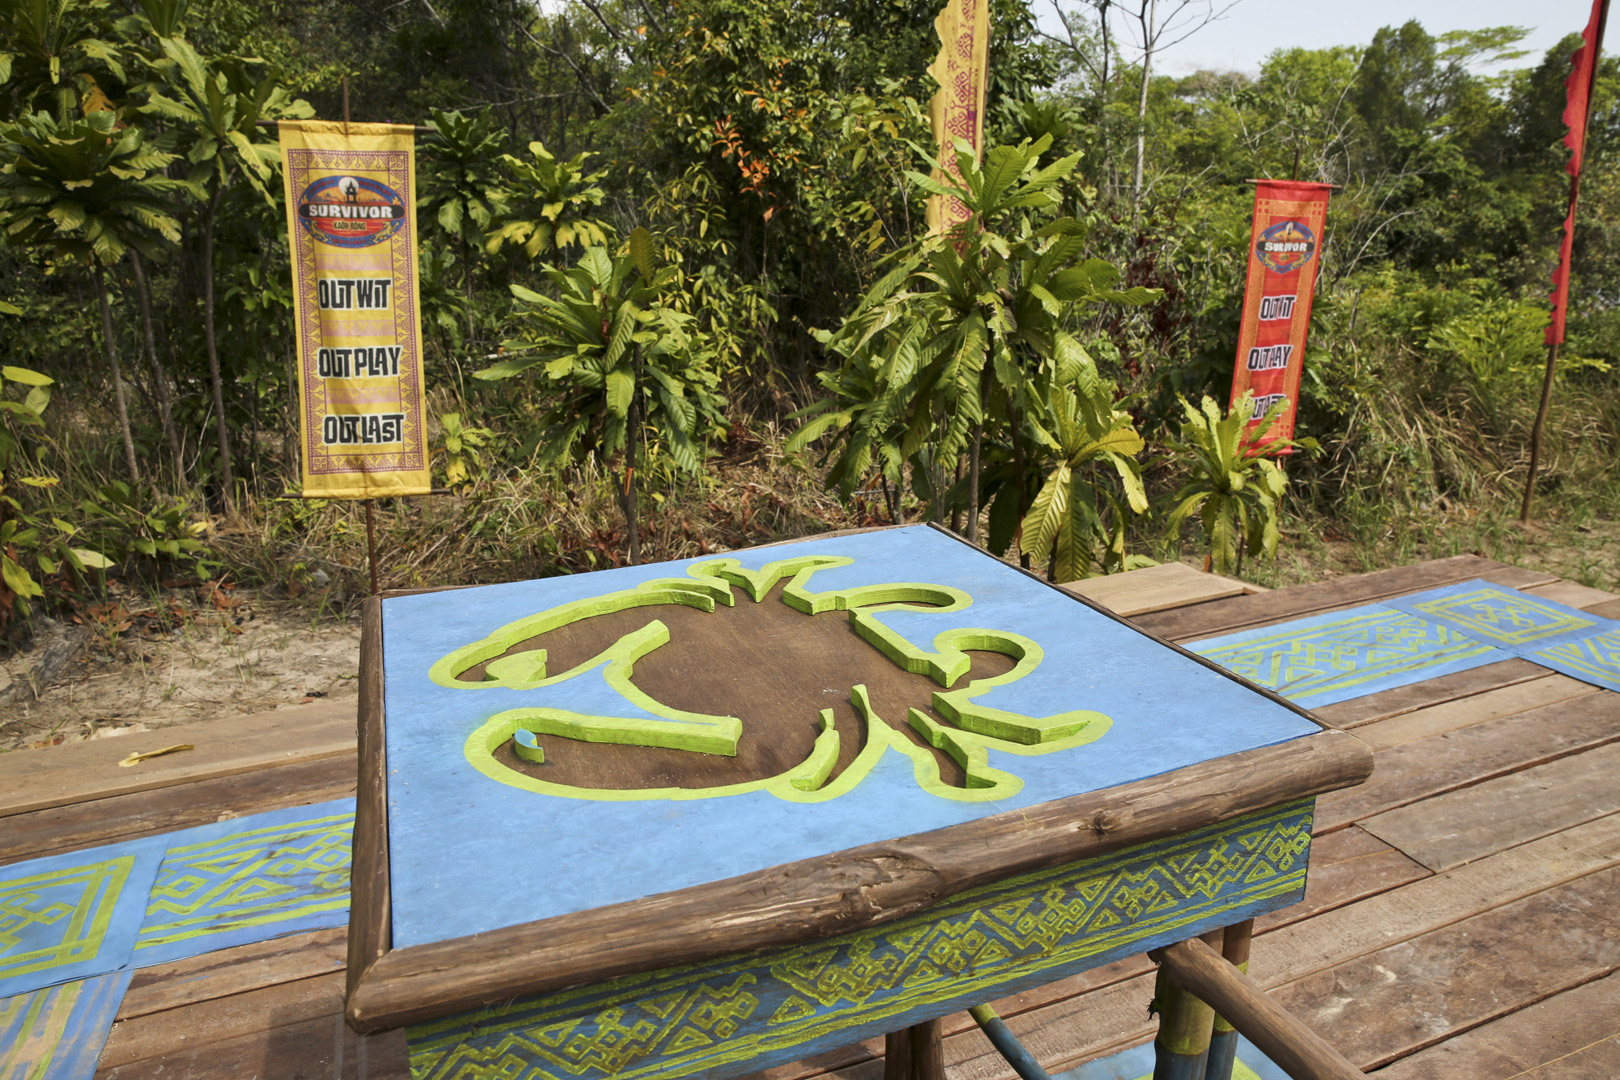 The castaways will work in pairs to complete this Immunity Challenge puzzle.